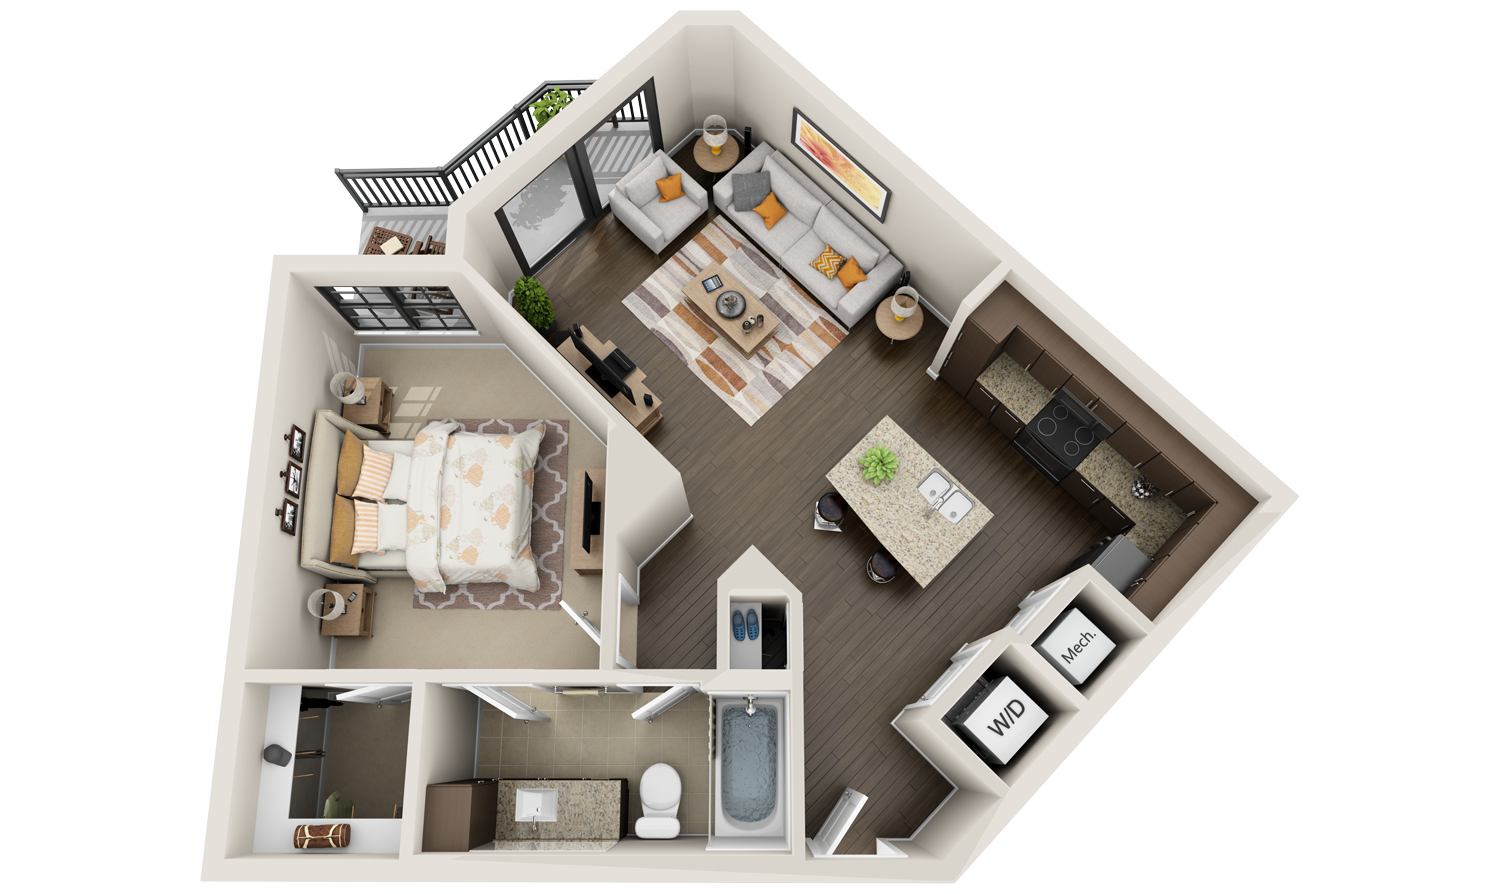 3d floor plans for apartments get your quote now for Home building websites